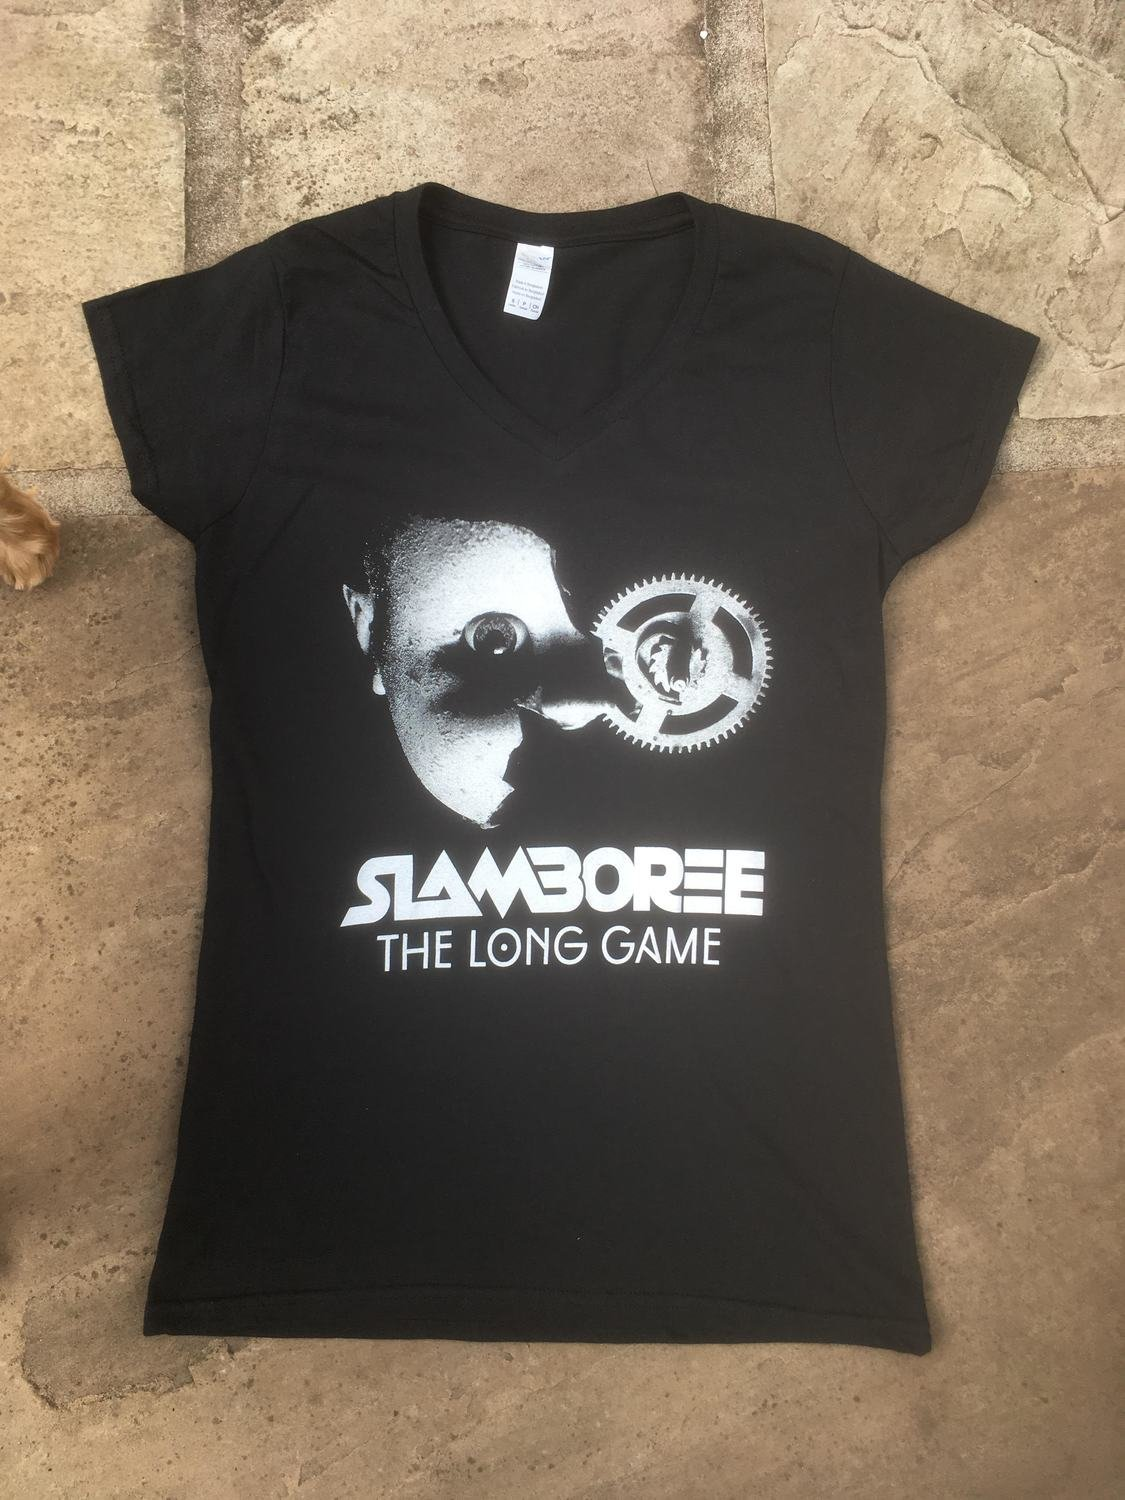 Softstyle Women's V-neck Fitted Black T-shirt - Slamboree The Long Game